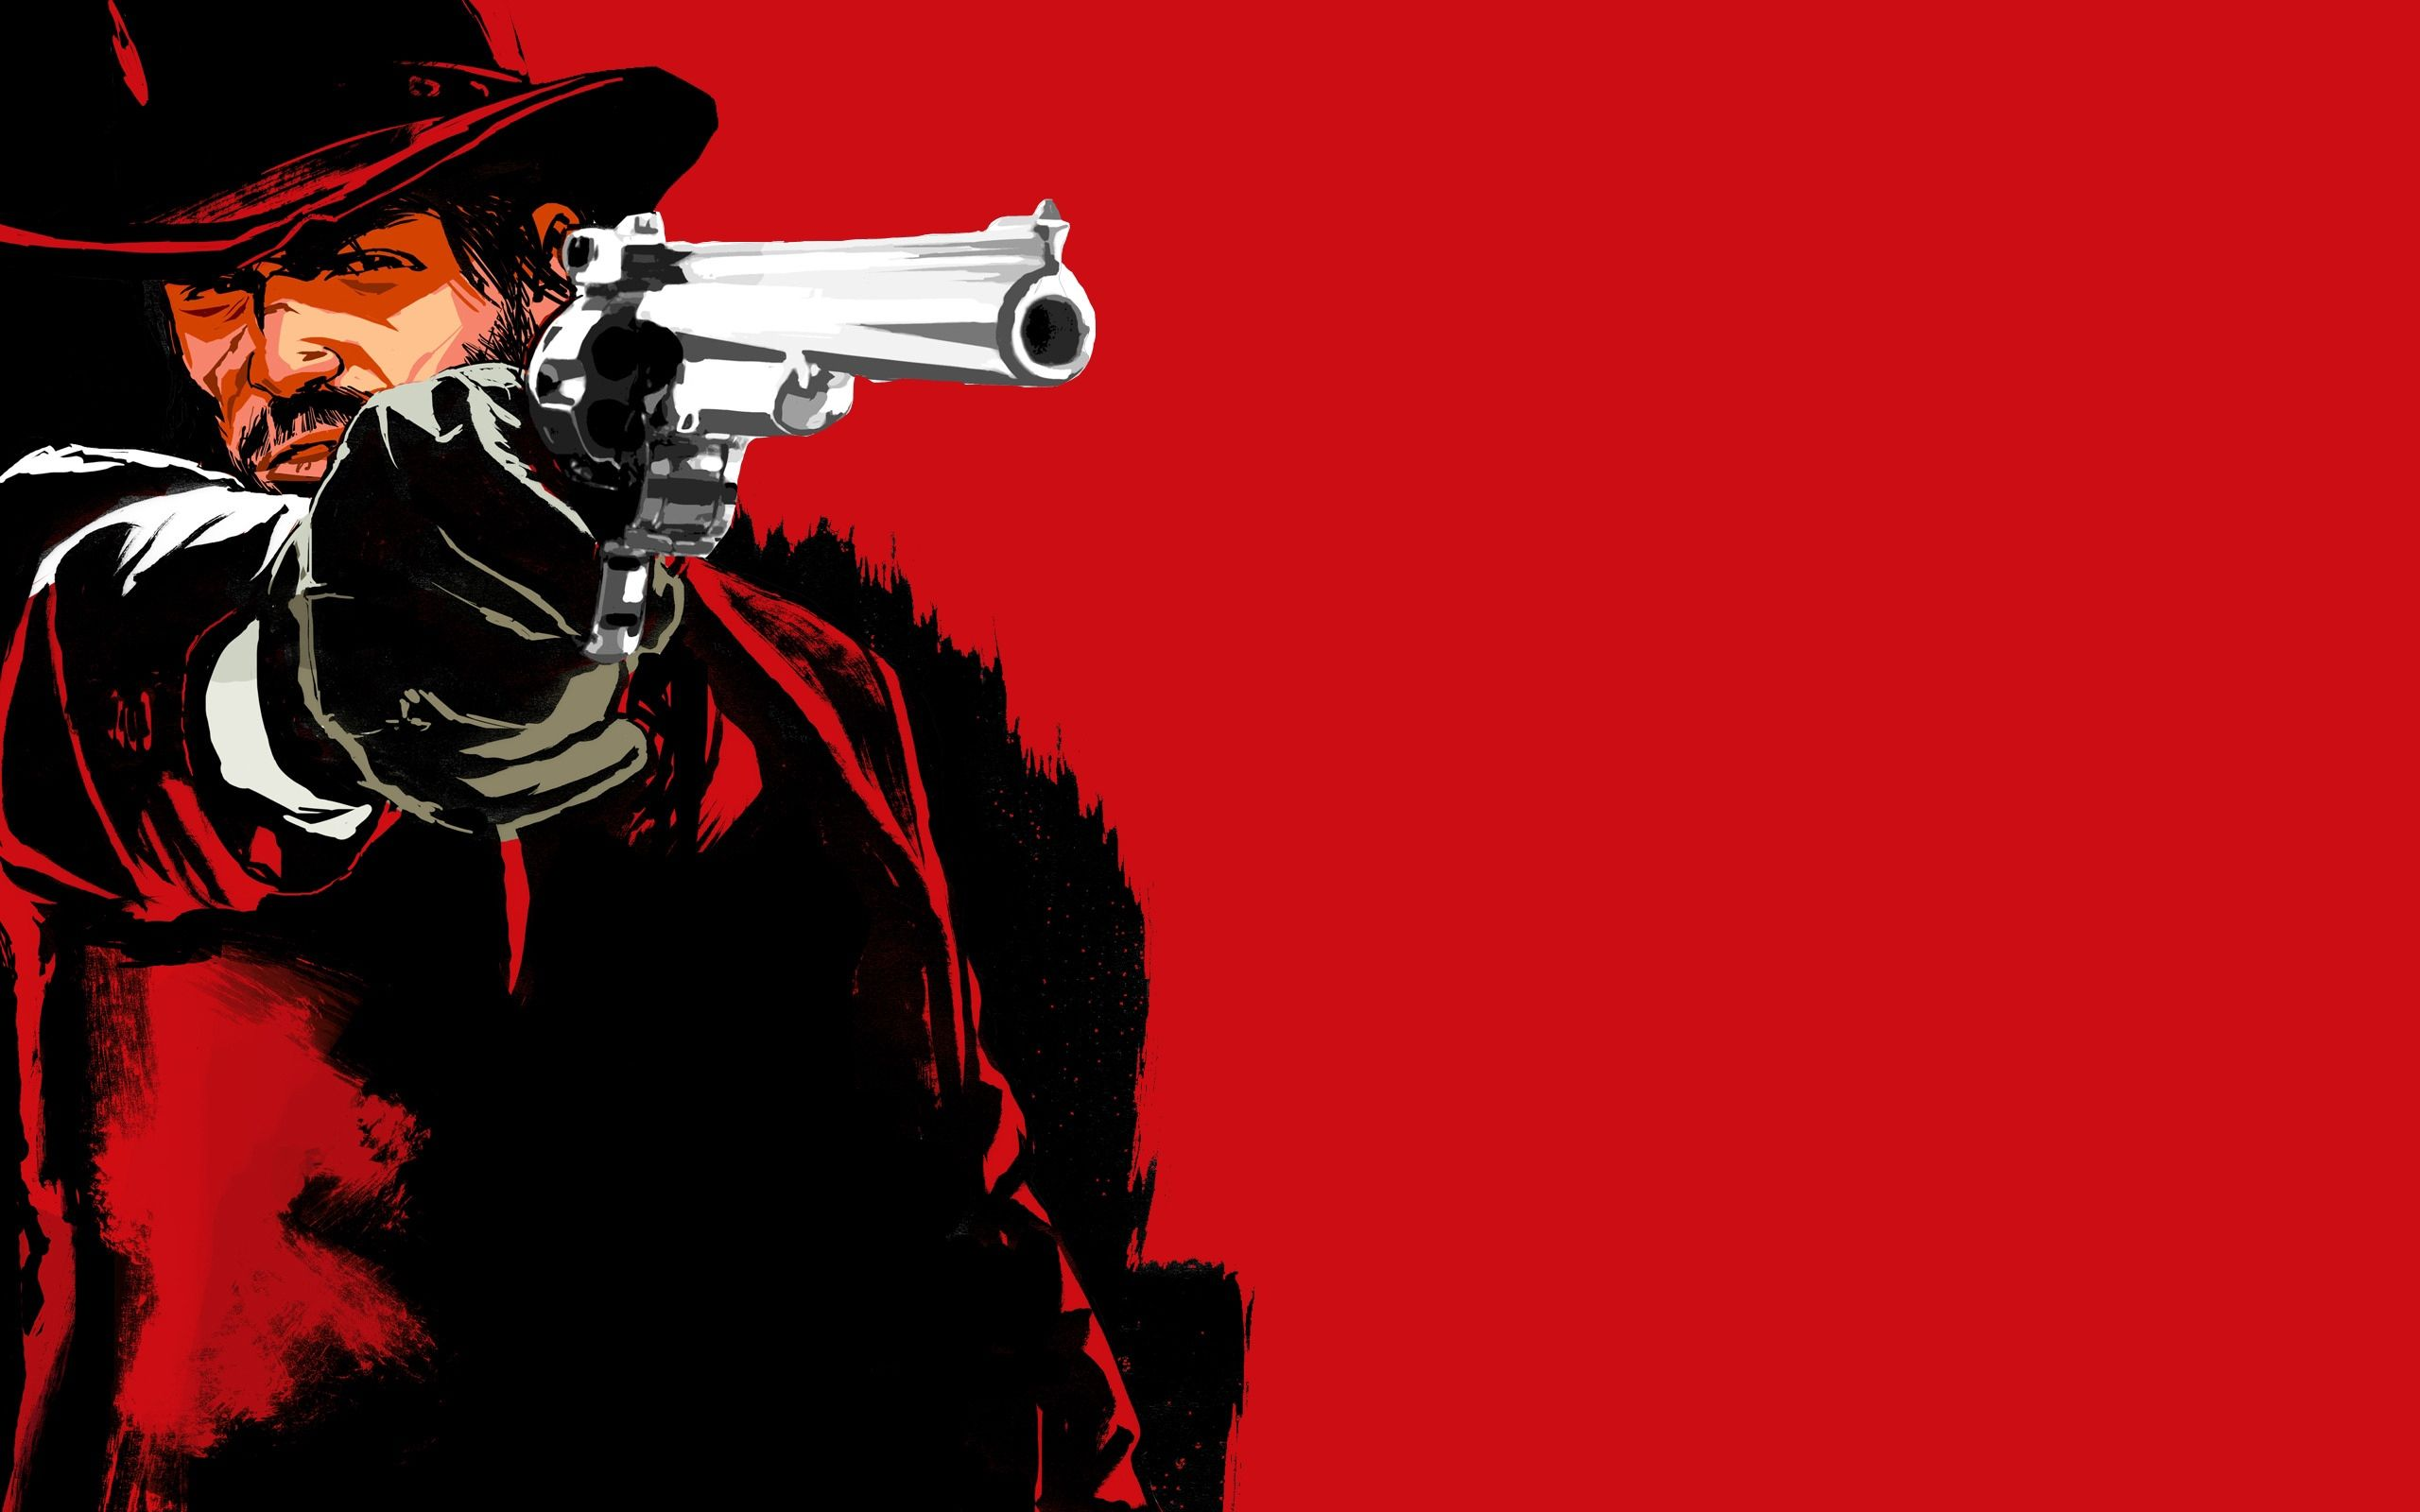 Red Dead Redemption Gun Wallpapers Top Free Red Dead Redemption Gun Backgrounds Wallpaperaccess